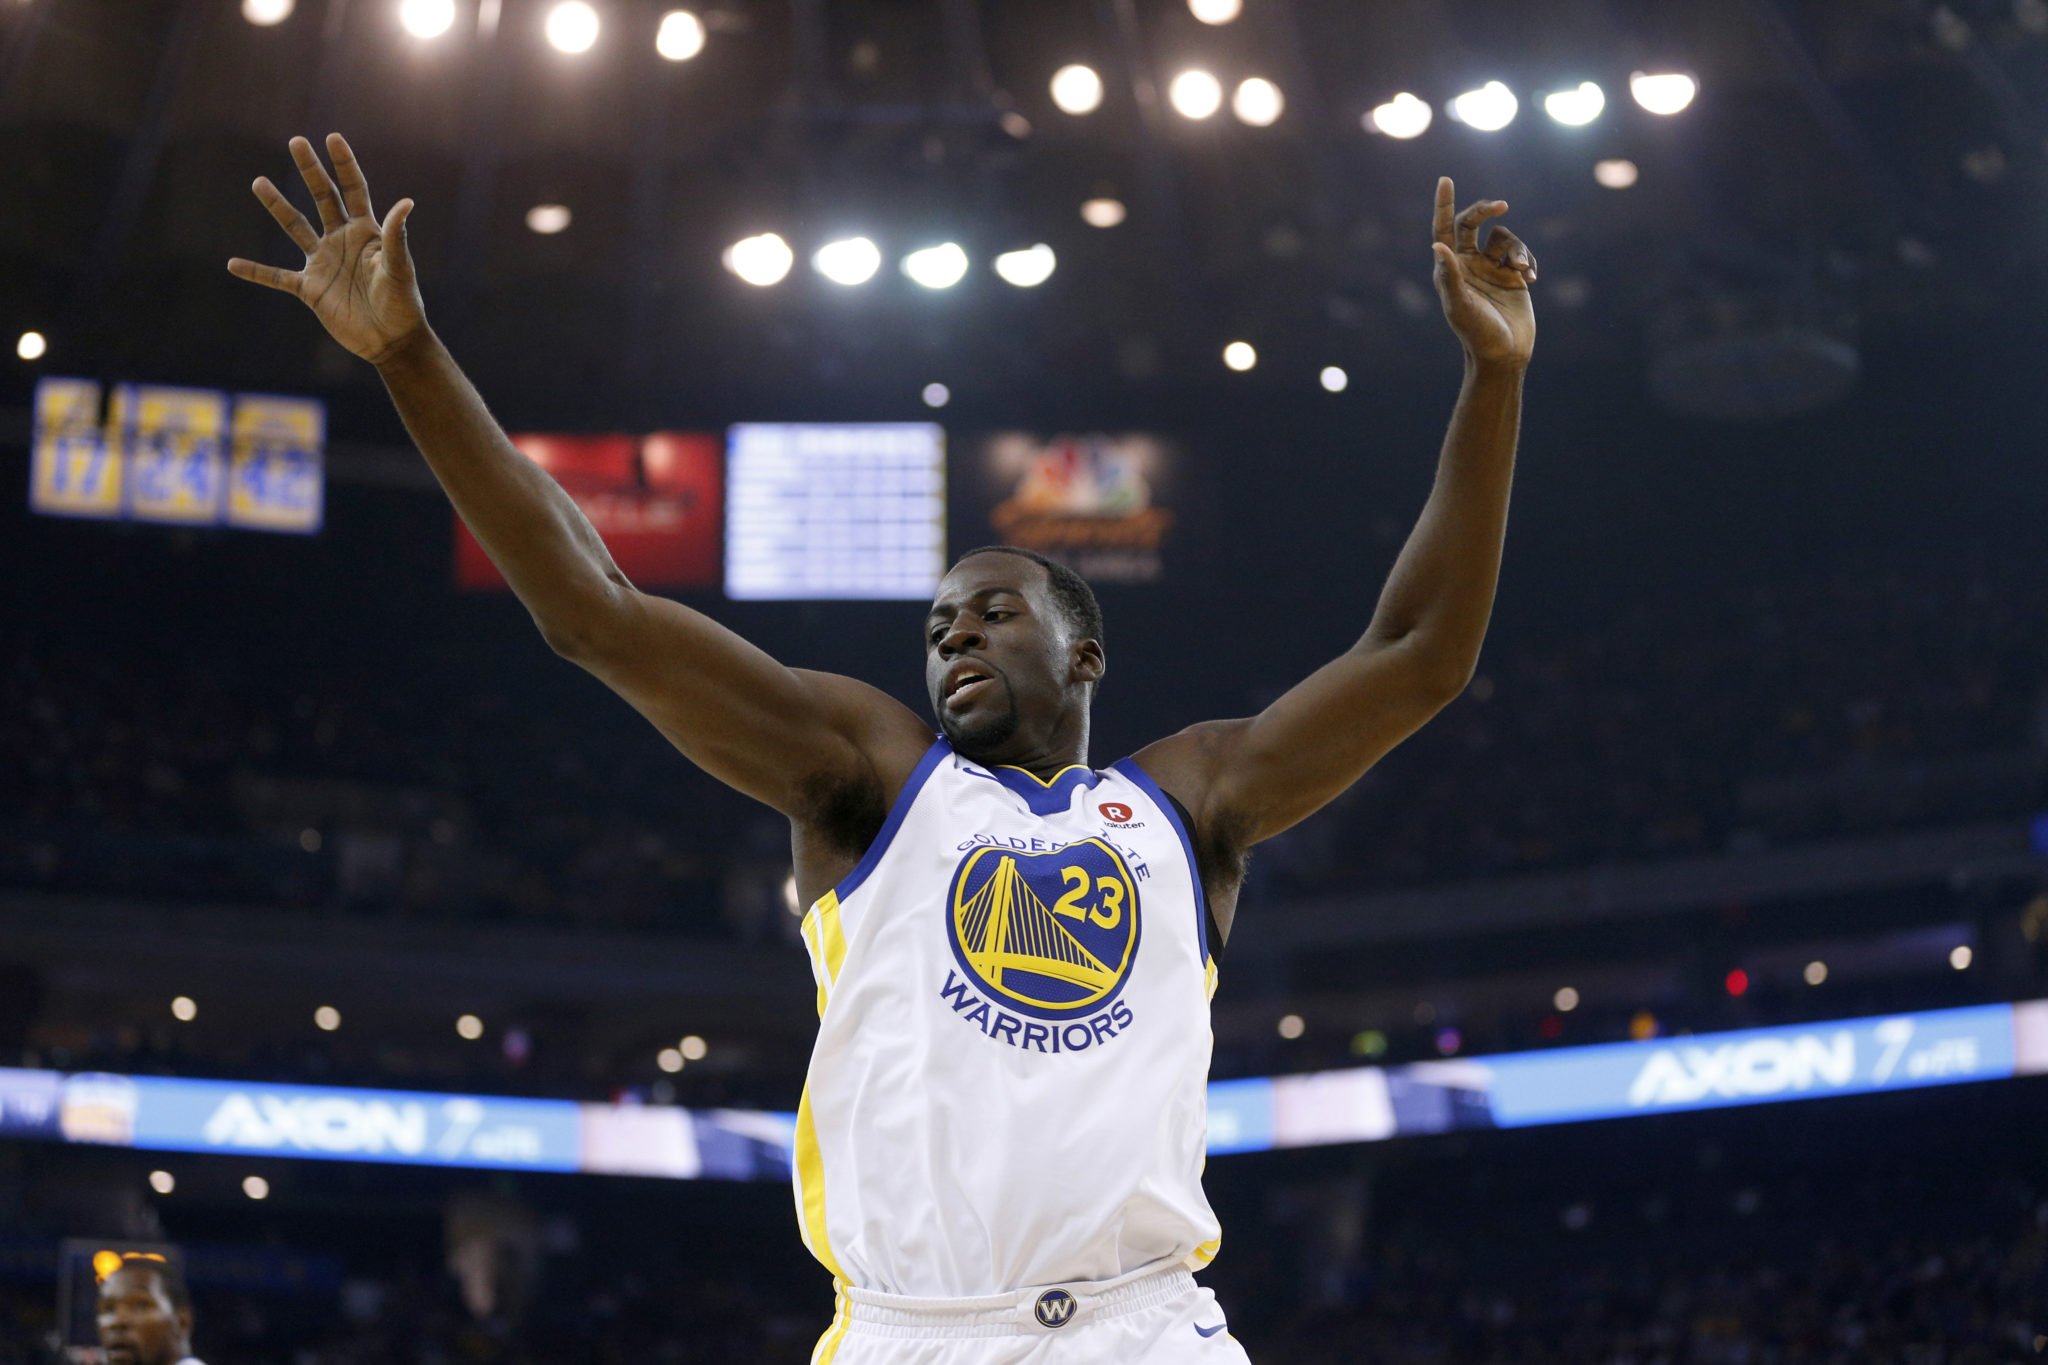 Draymond (knee) to undergo MRI